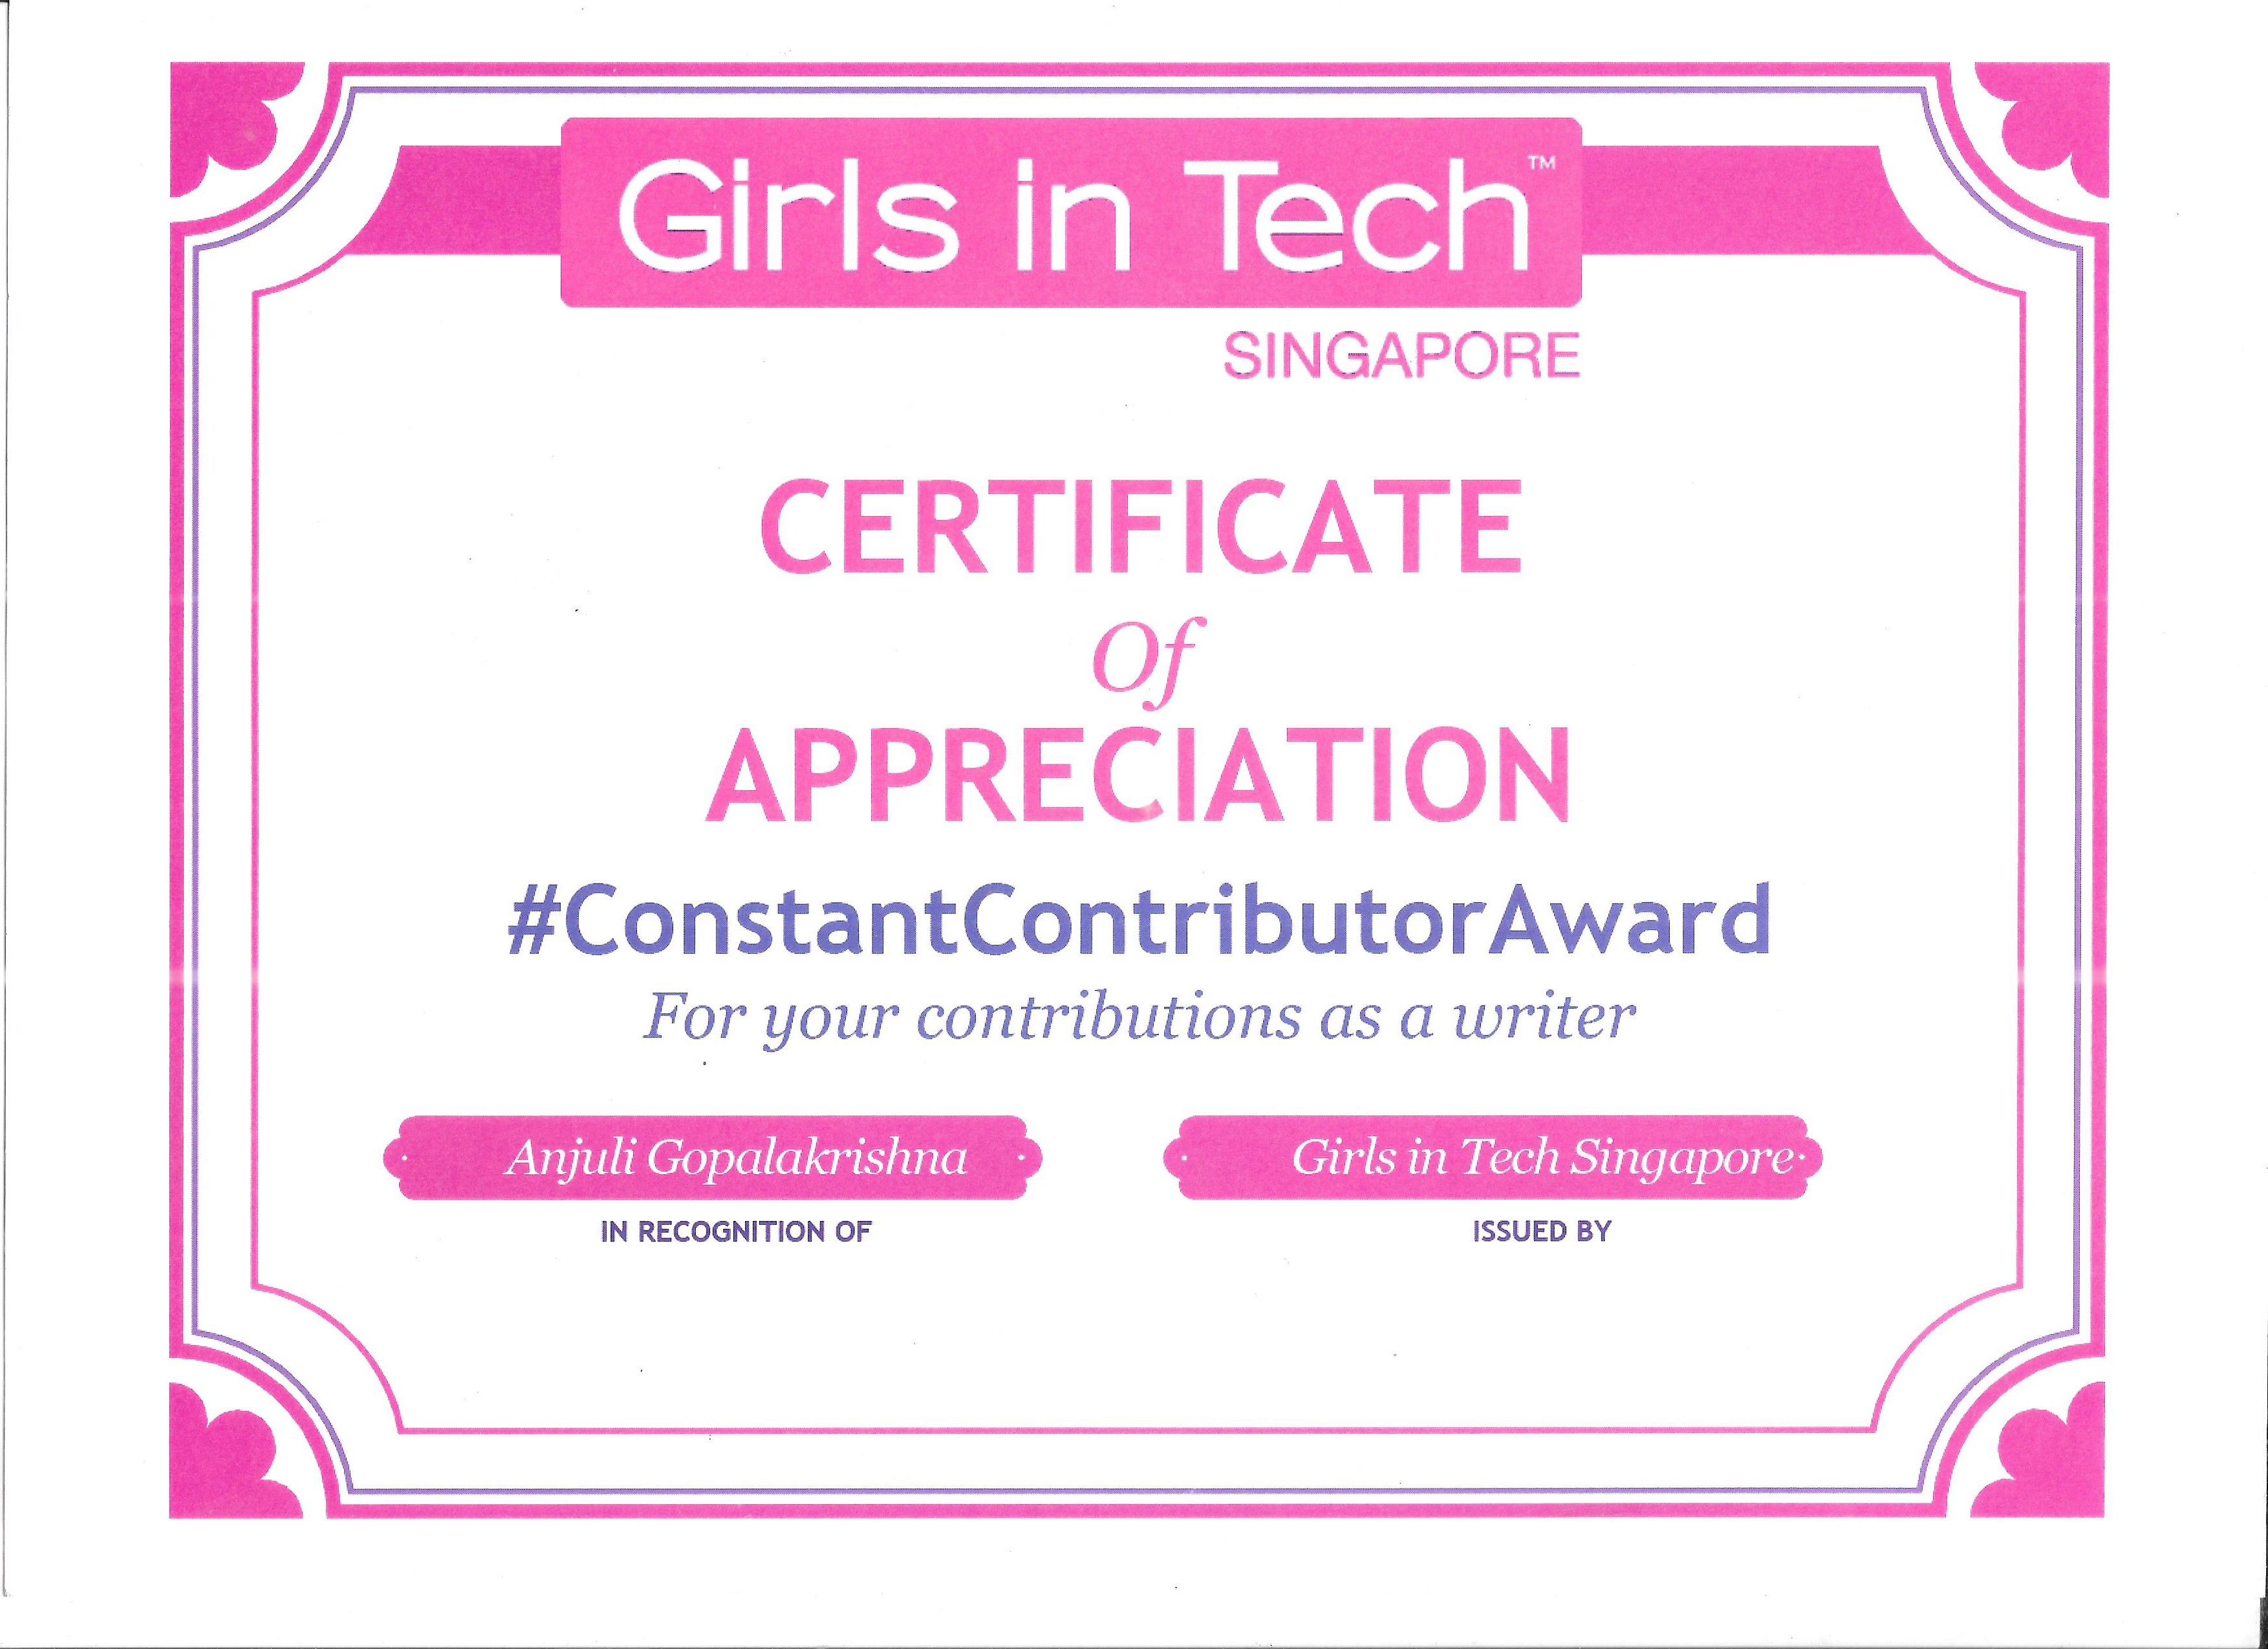 Girls in Tech Singapore